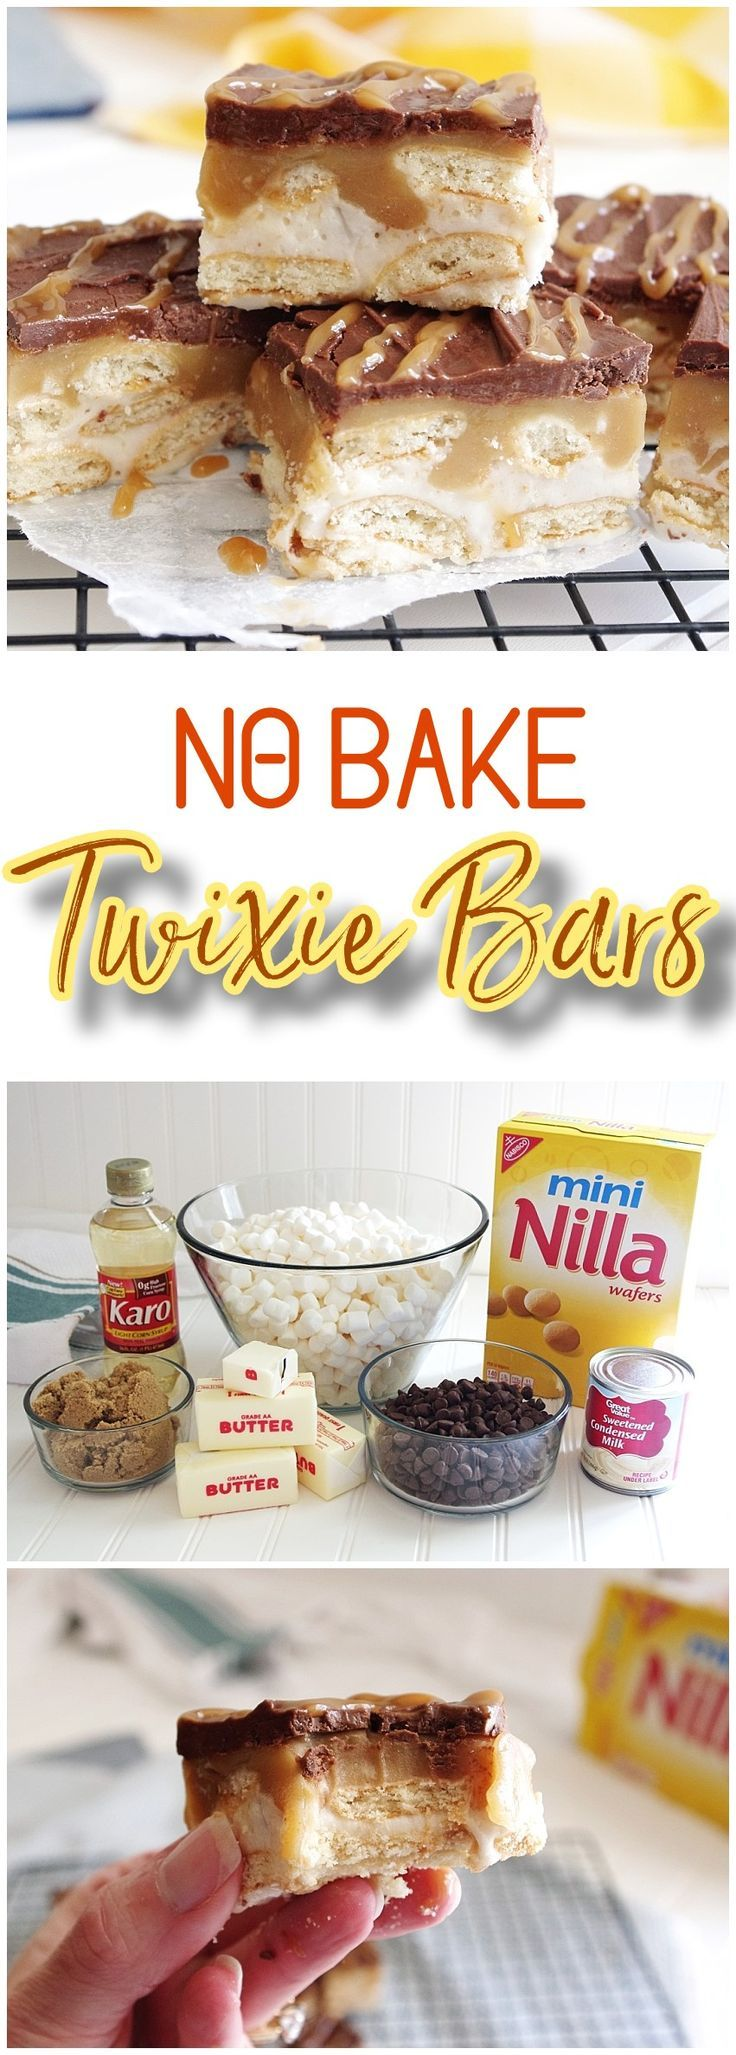 No Bake TWIXIE Cookie Bars – Caramel, Chocolate, Mini Nilla Wafer Cookies – Easy Dessert Treats Recipe